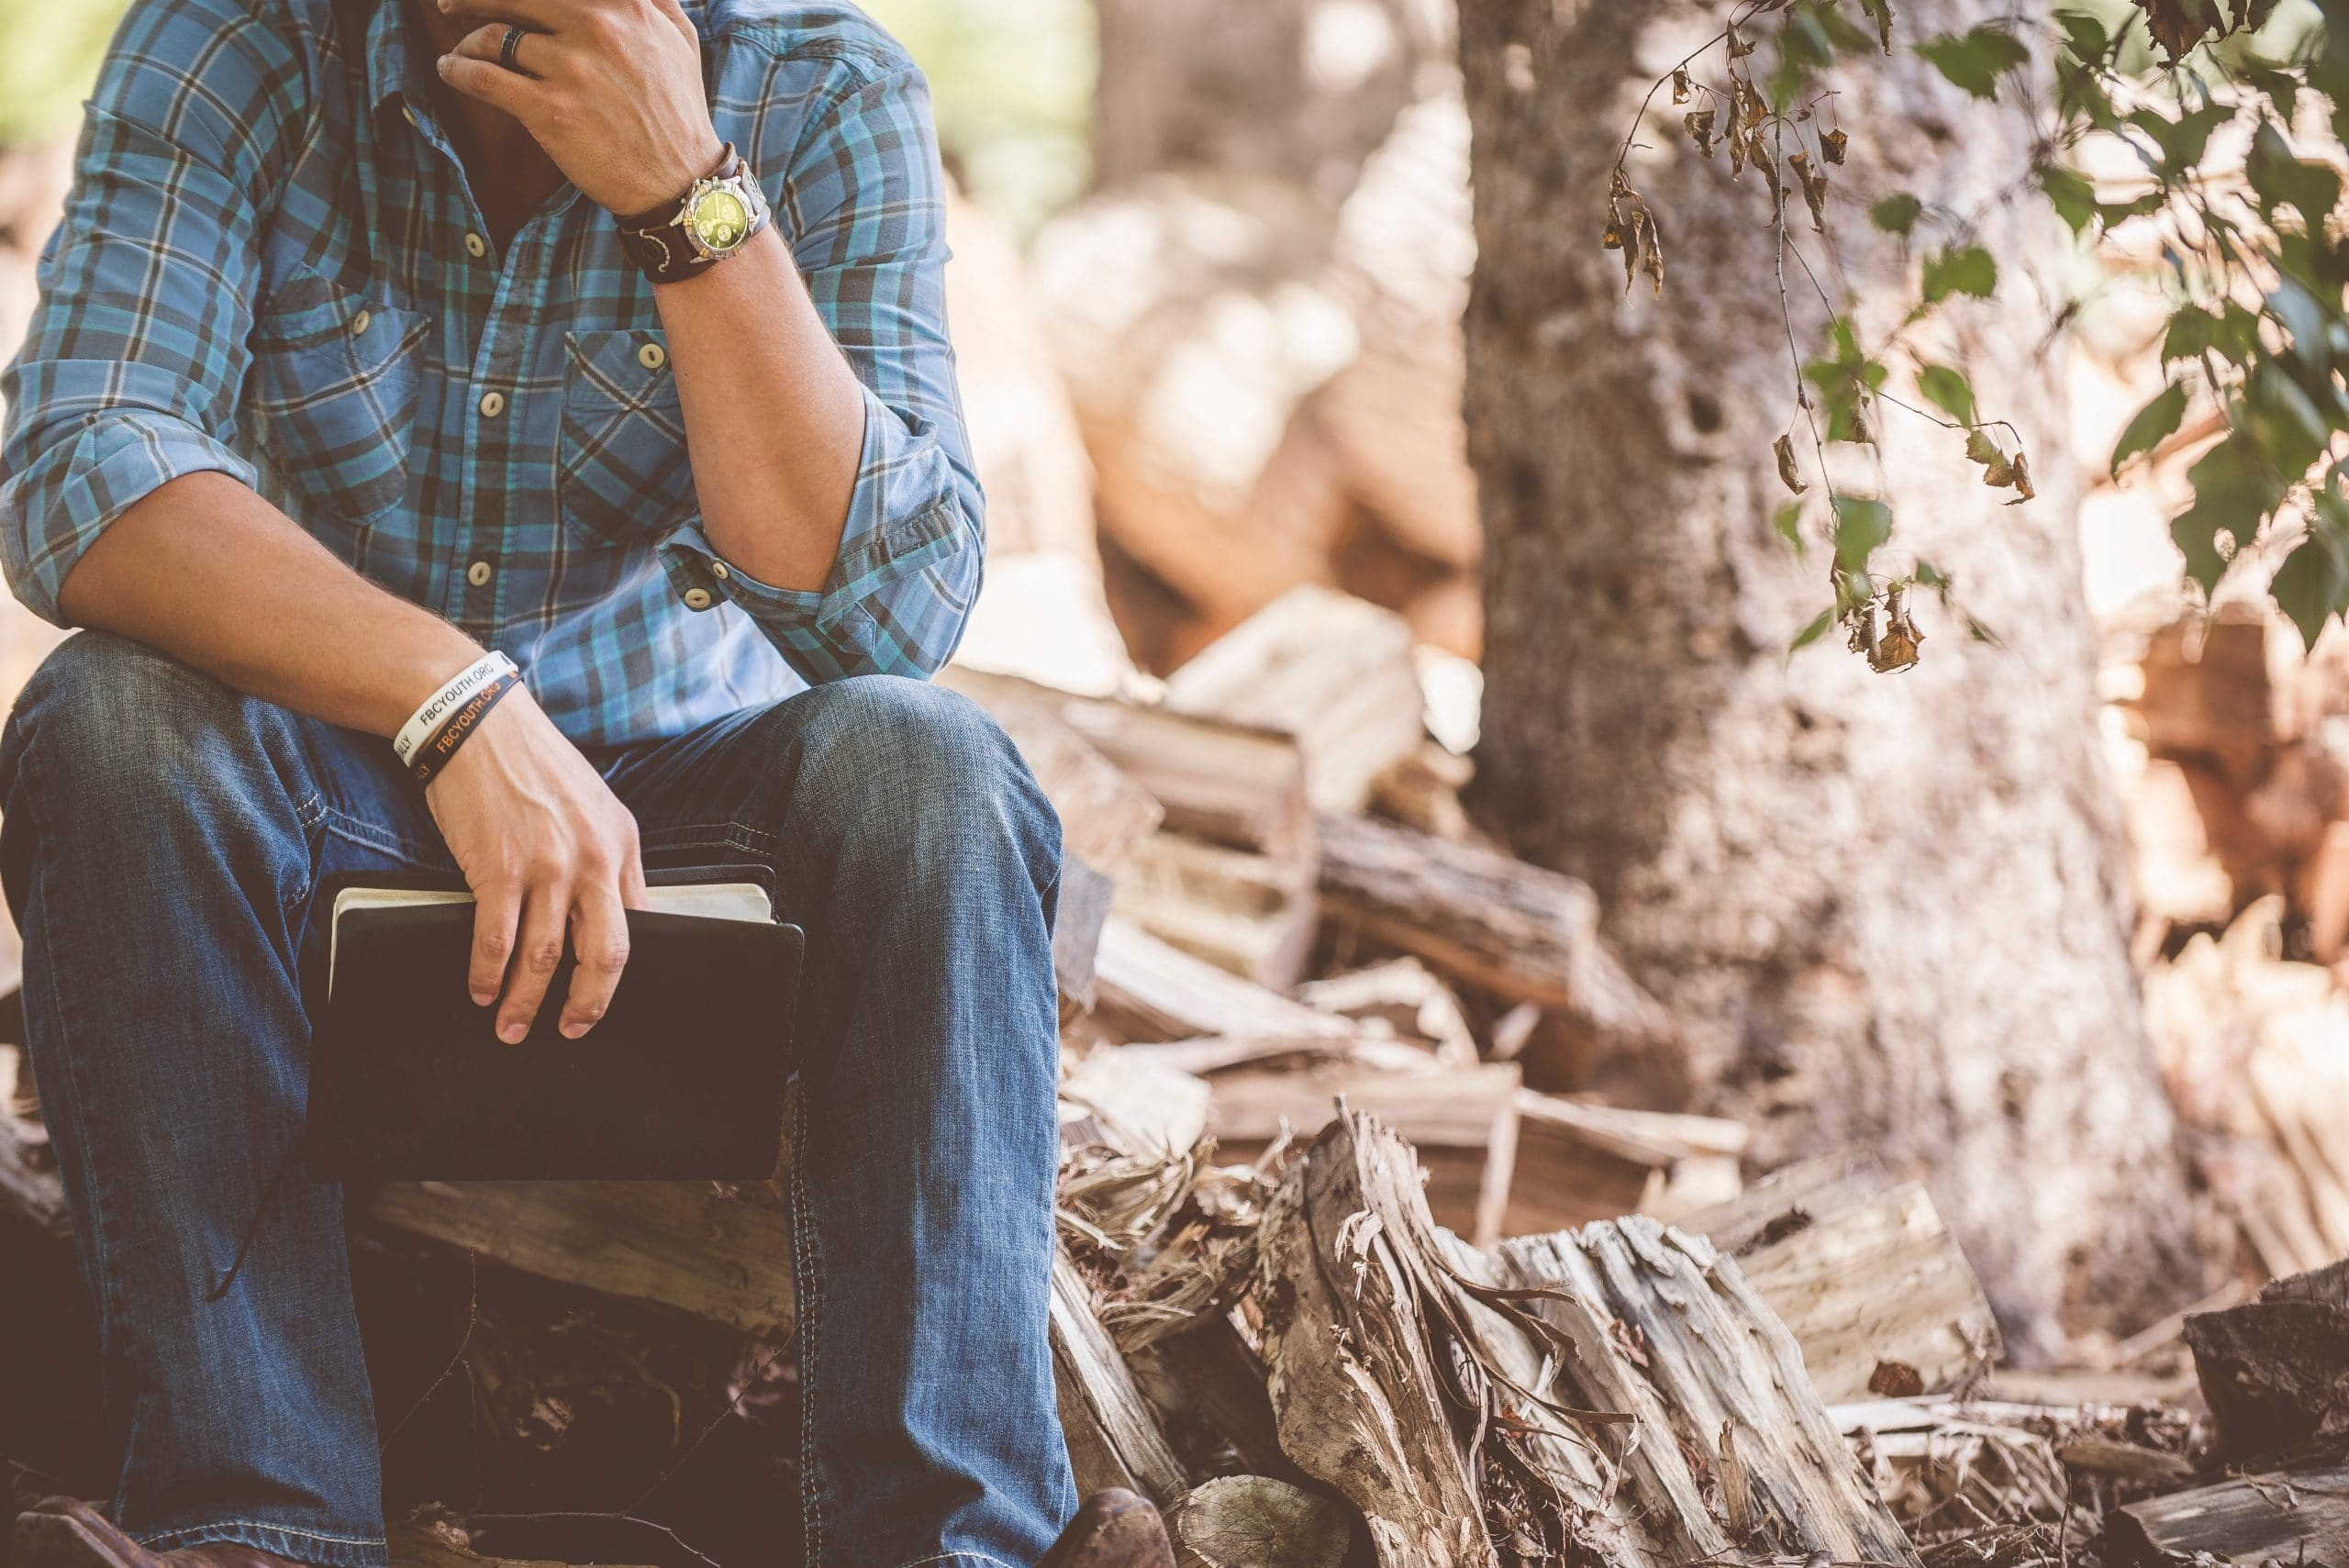 Can Christians Go To Counseling?